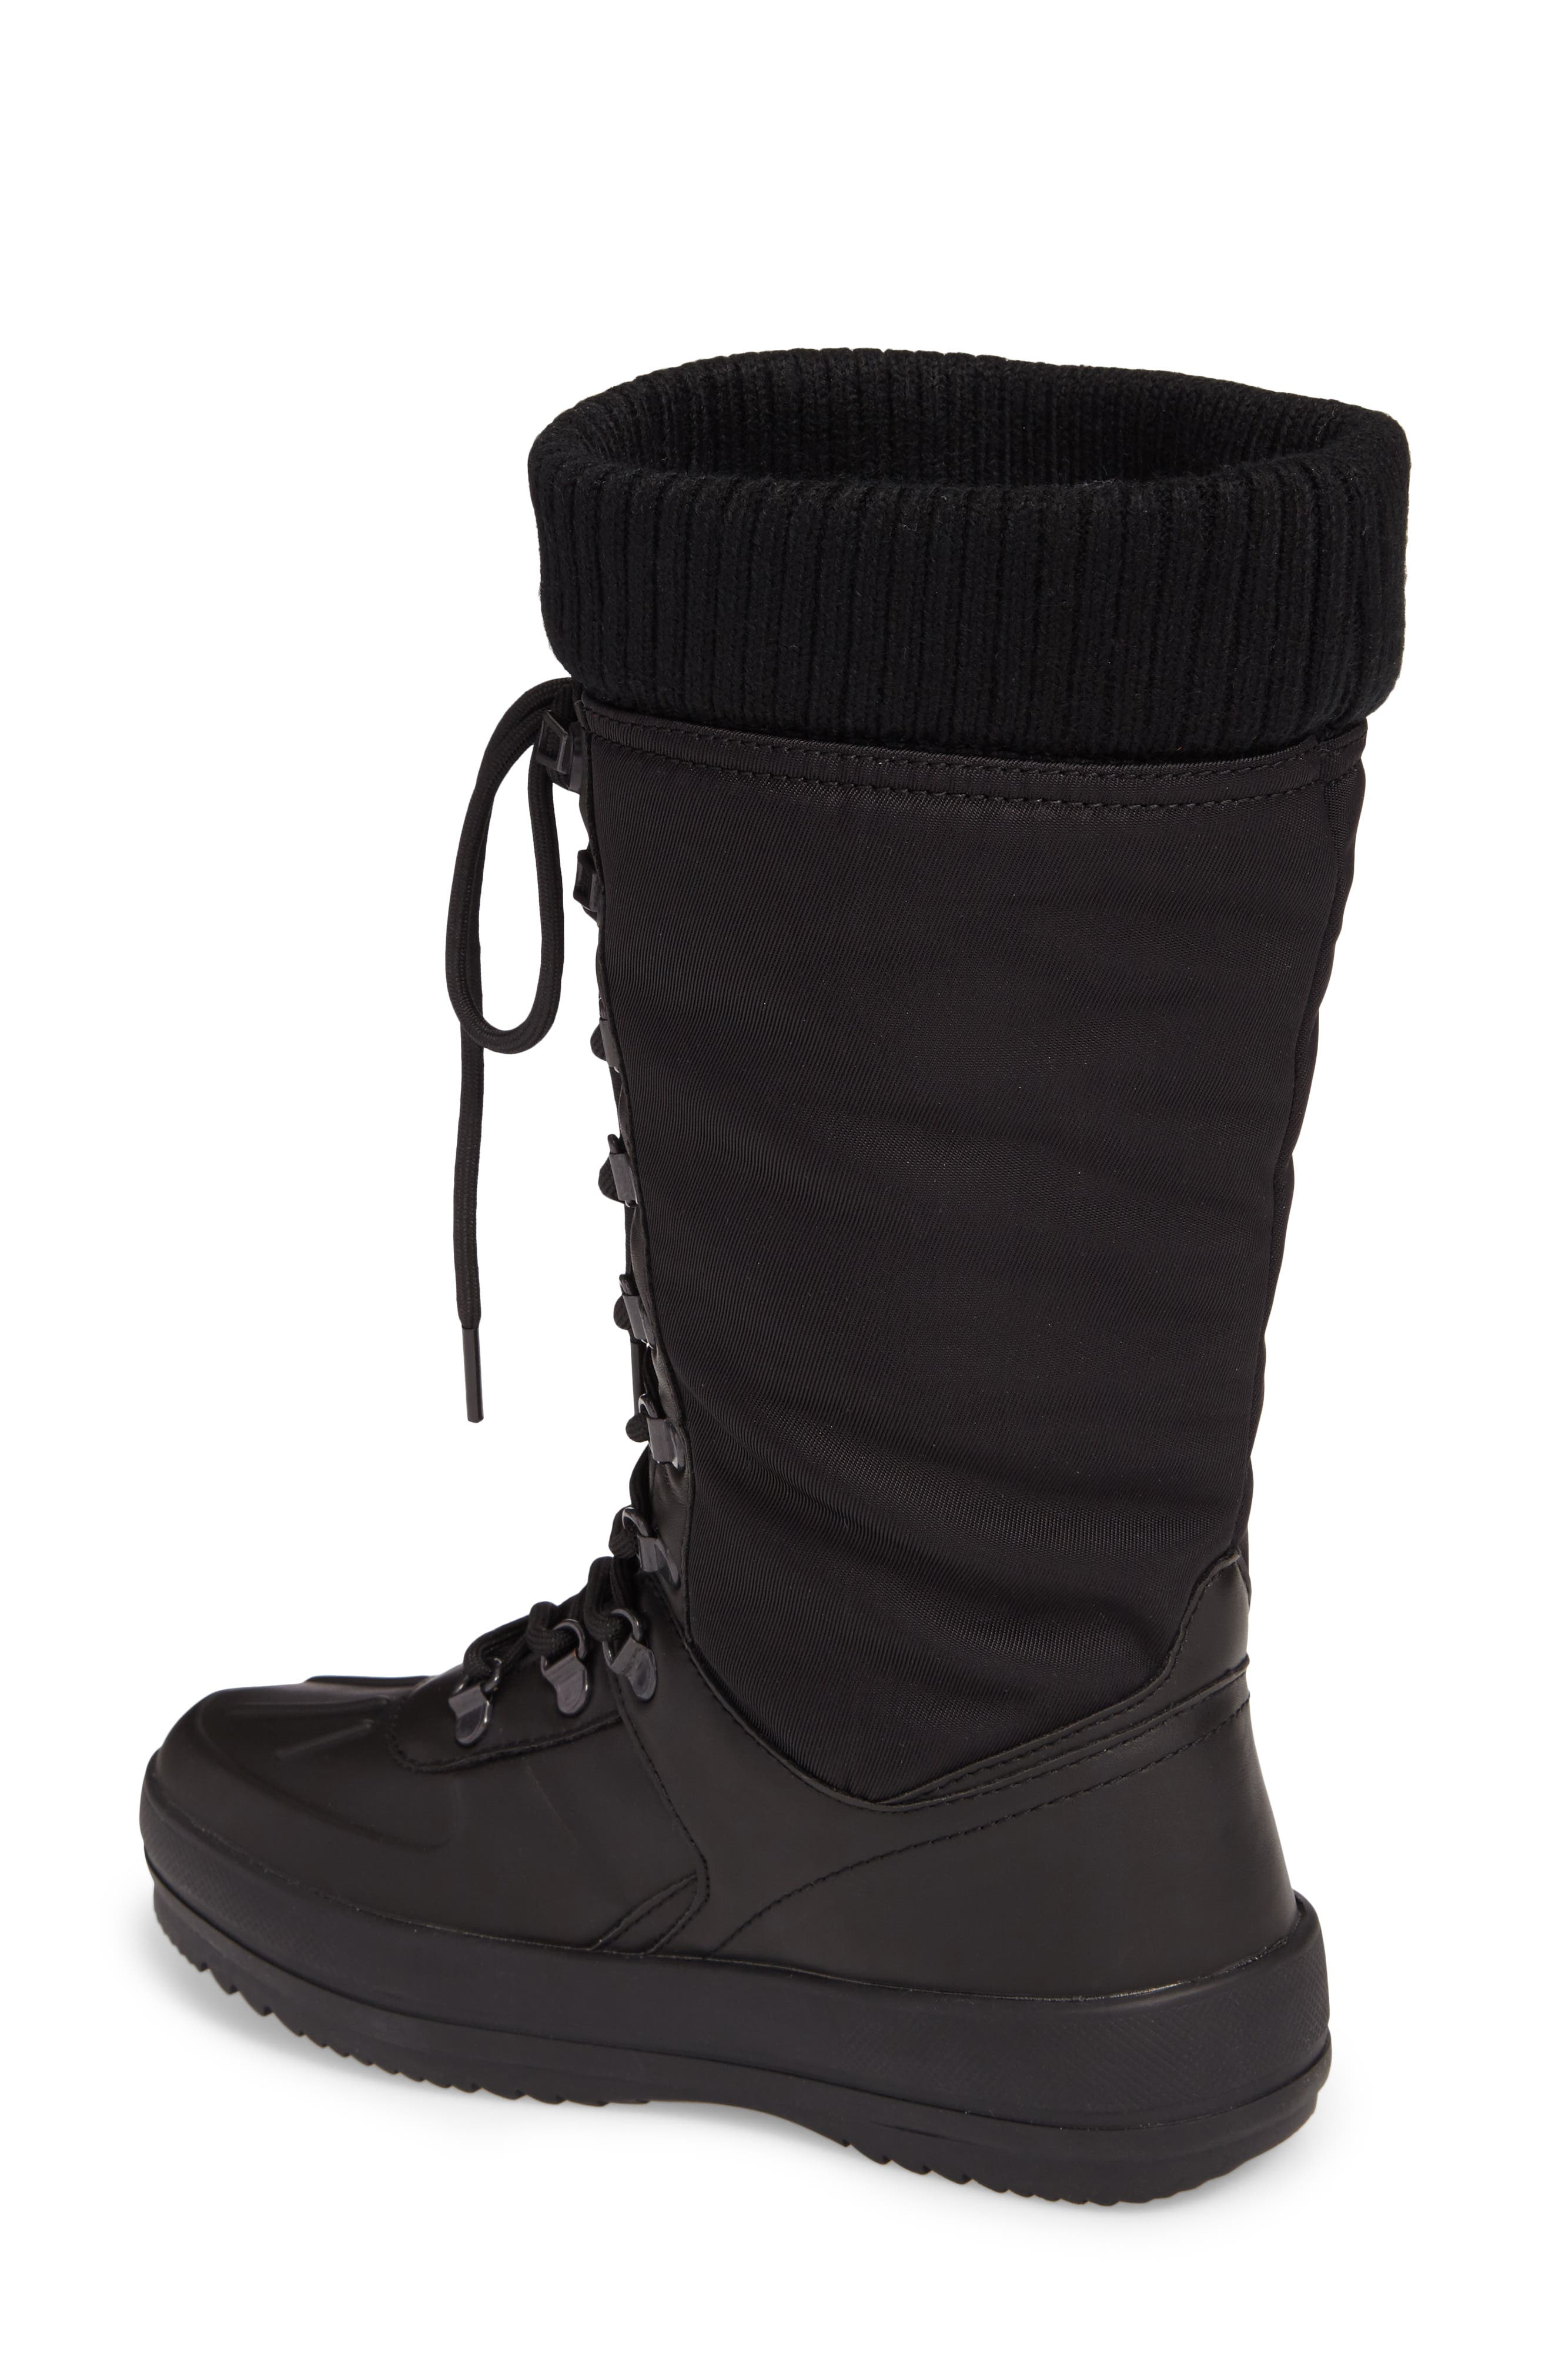 Vancouver Waterproof Winter Boot,                             Alternate thumbnail 2, color,                             Black All Over